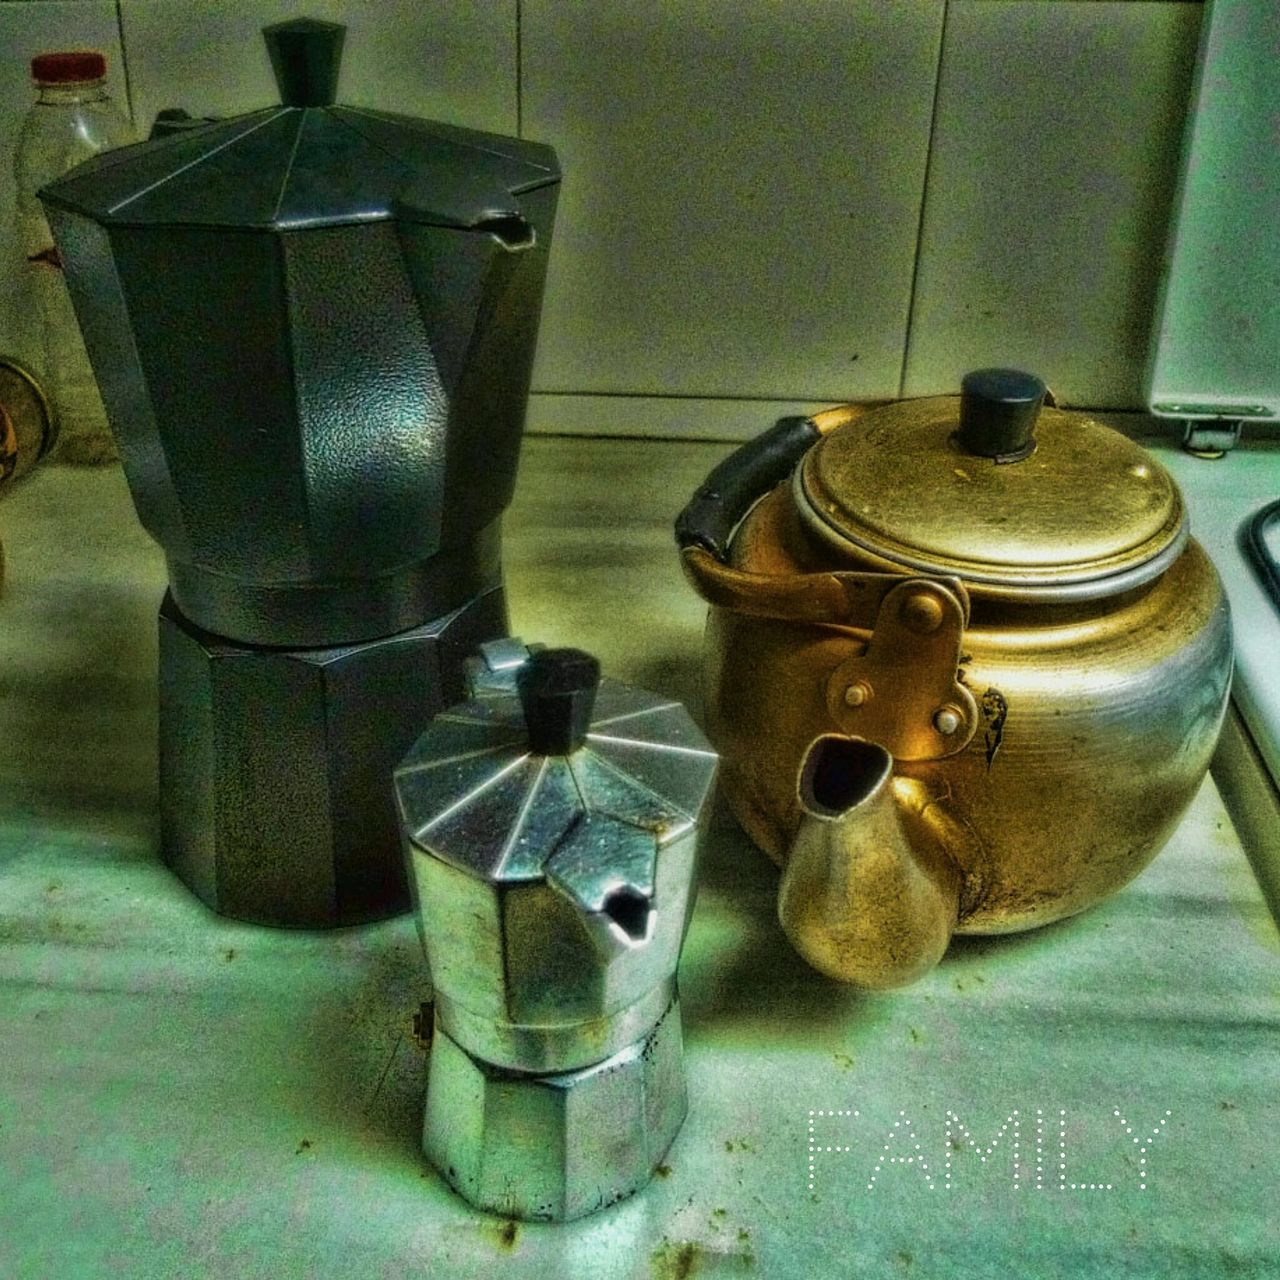 metal, no people, indoors, close-up, stove, day